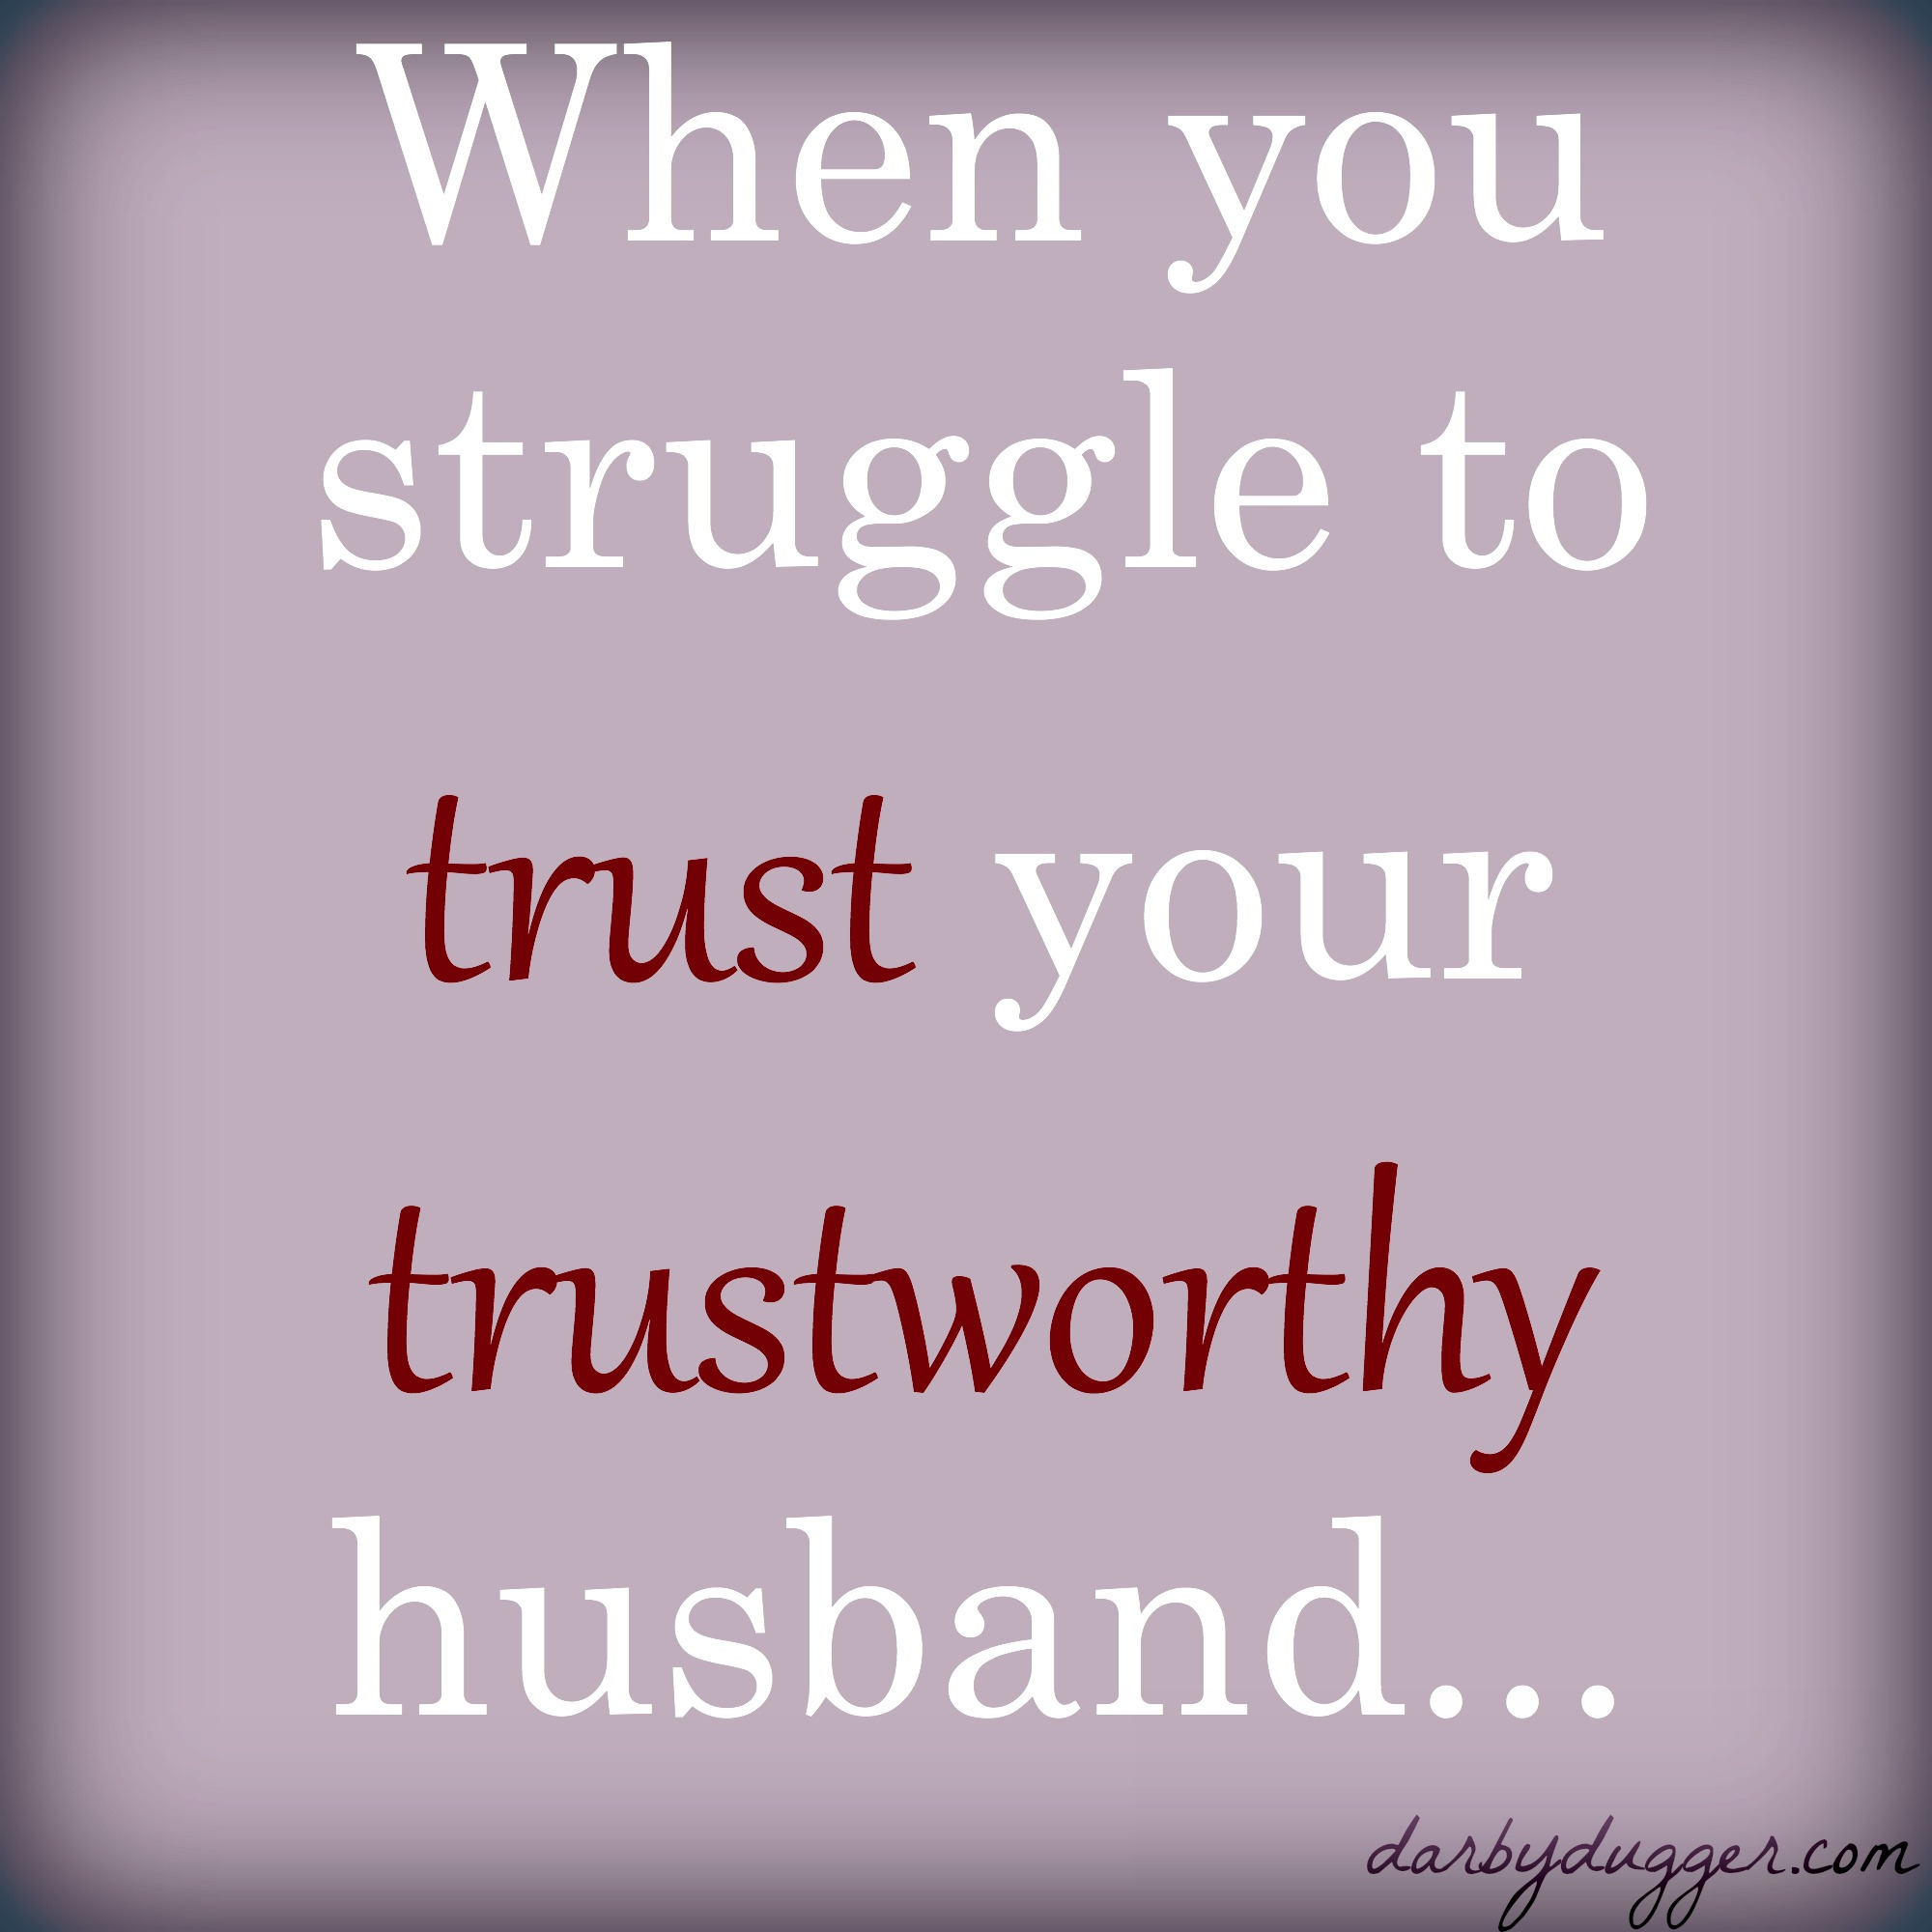 Struggling Love Quotes: Struggling Quotes In Marriage. QuotesGram